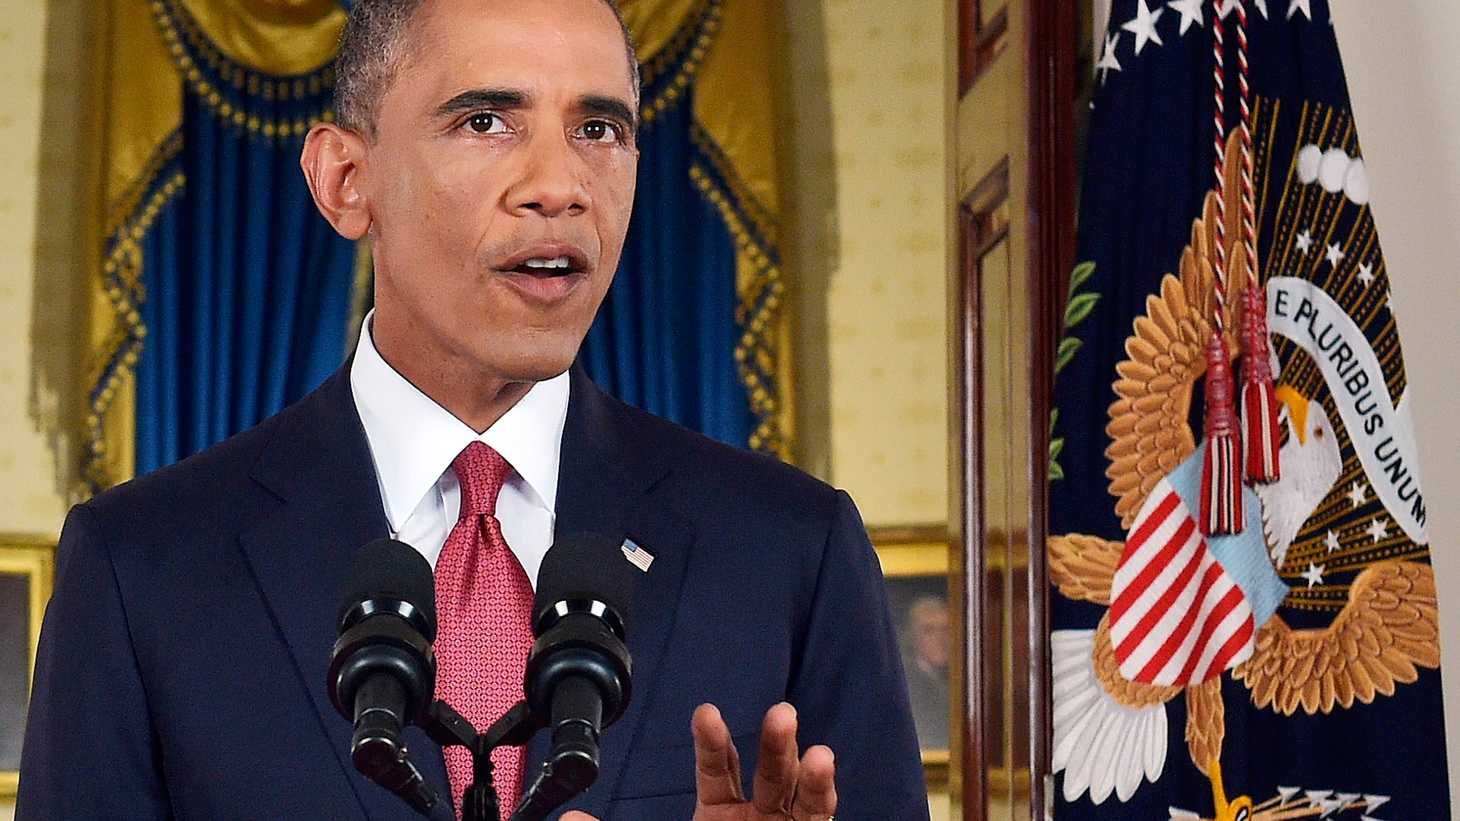 President Obama made a case last night for carrying out a campaign of airstrikes in Syria to fight the radical Islamist group ISIS, also known as ISIL, or the Islamic State. How much was his speech about national security, and how much was it about domestic politics?